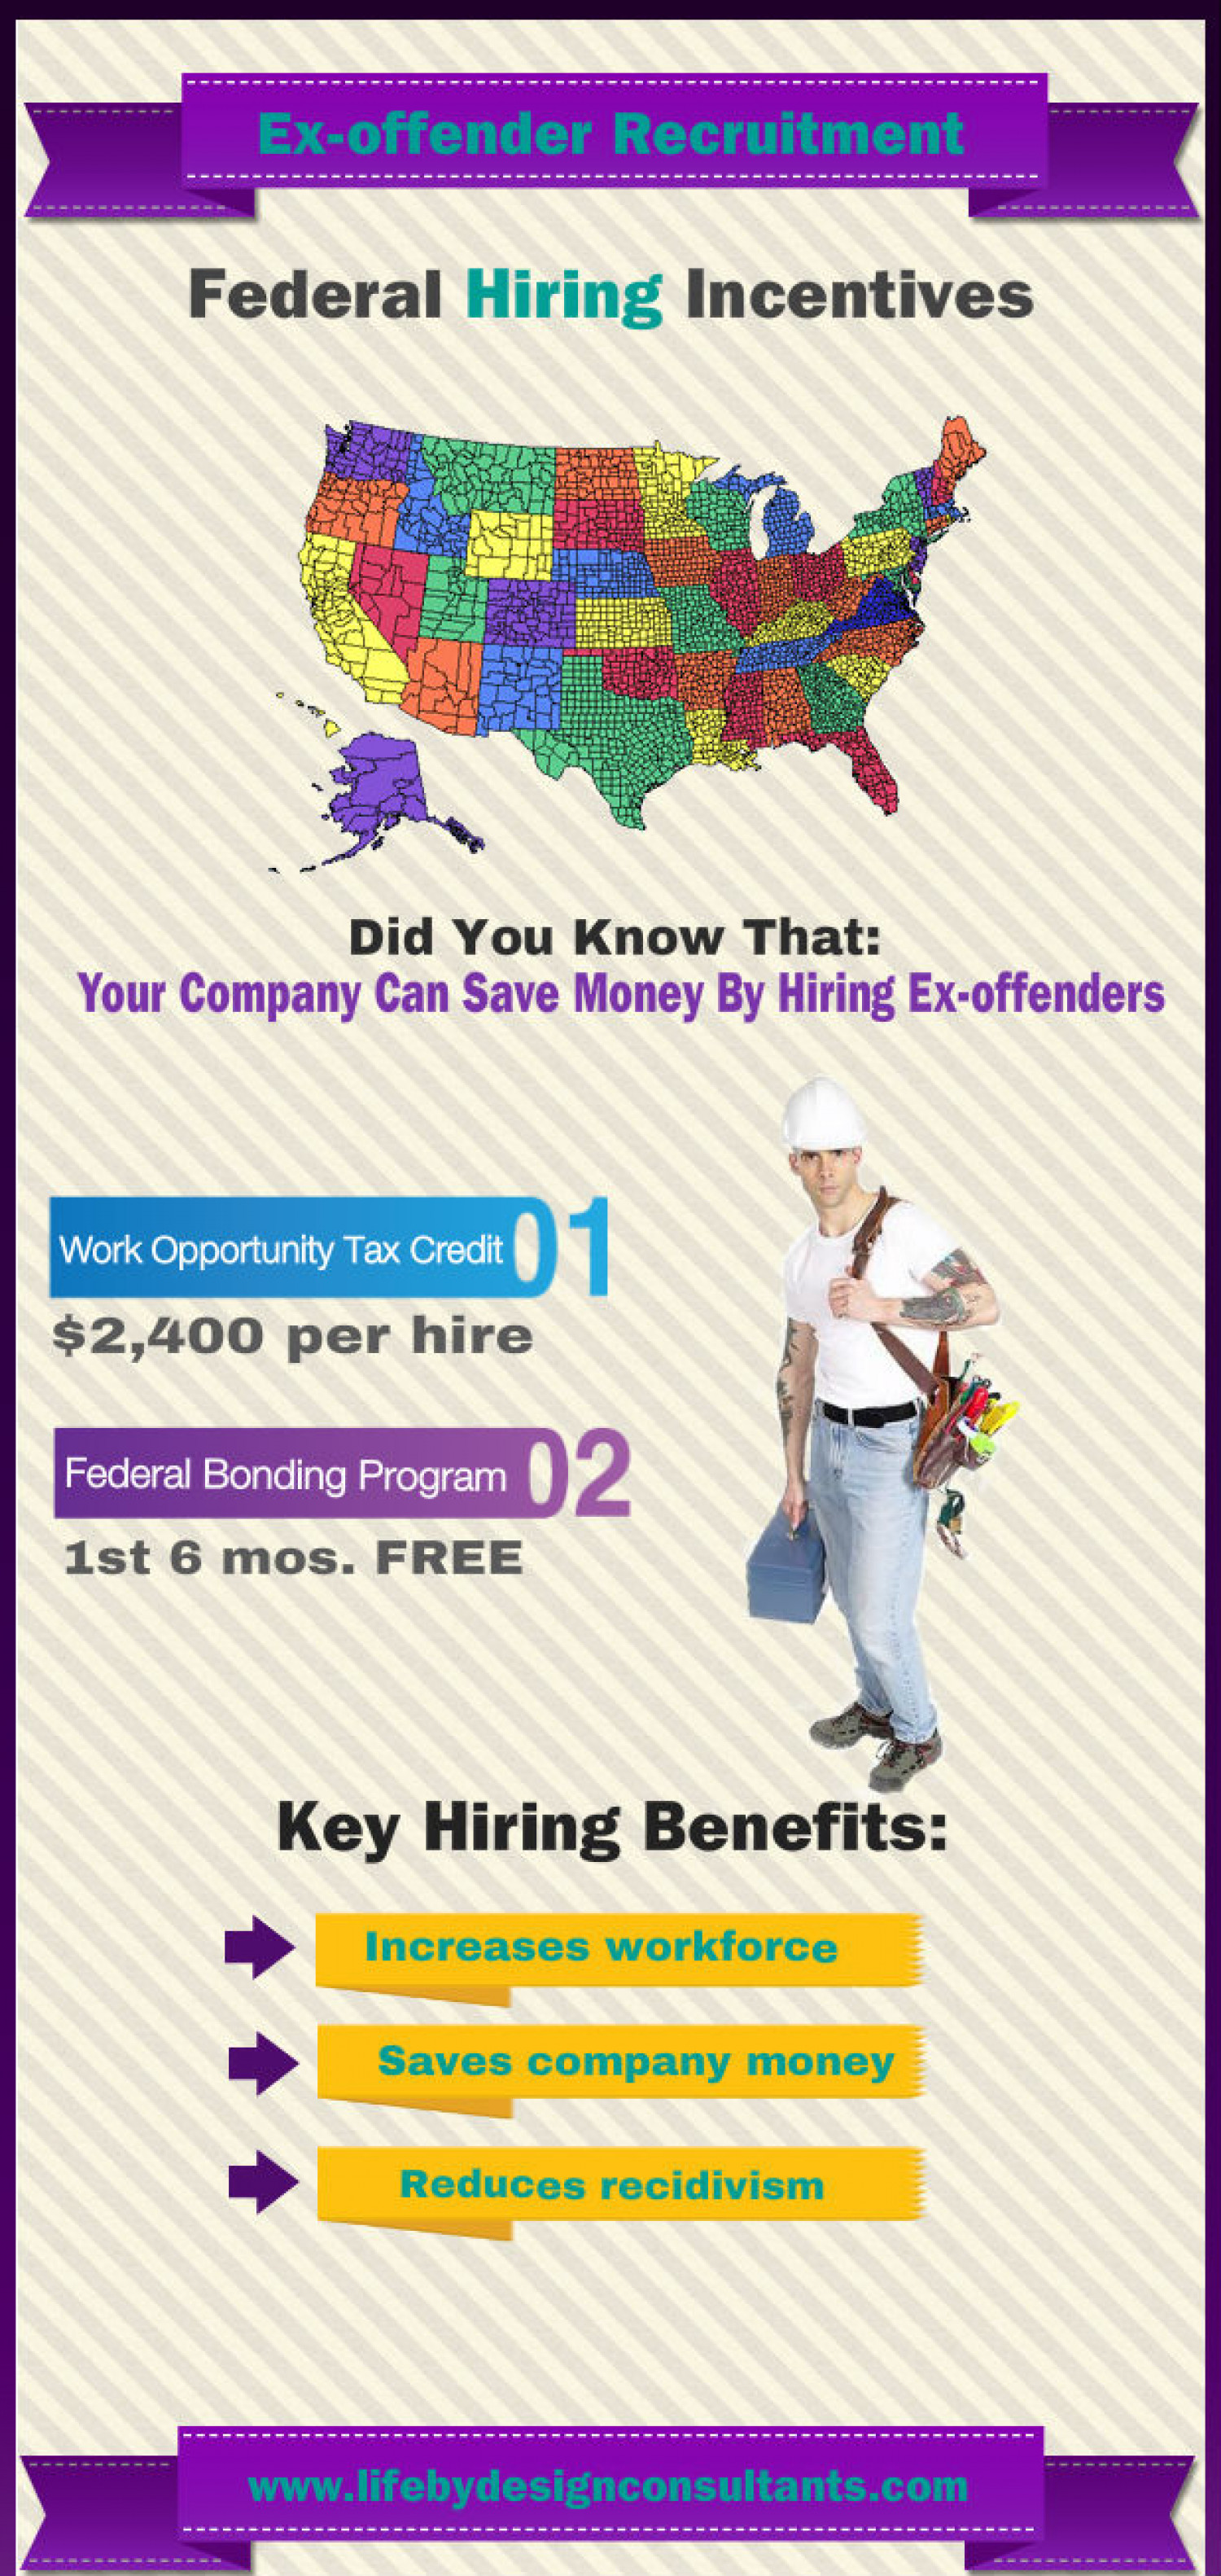 Ex-offender Recruitment Infographic